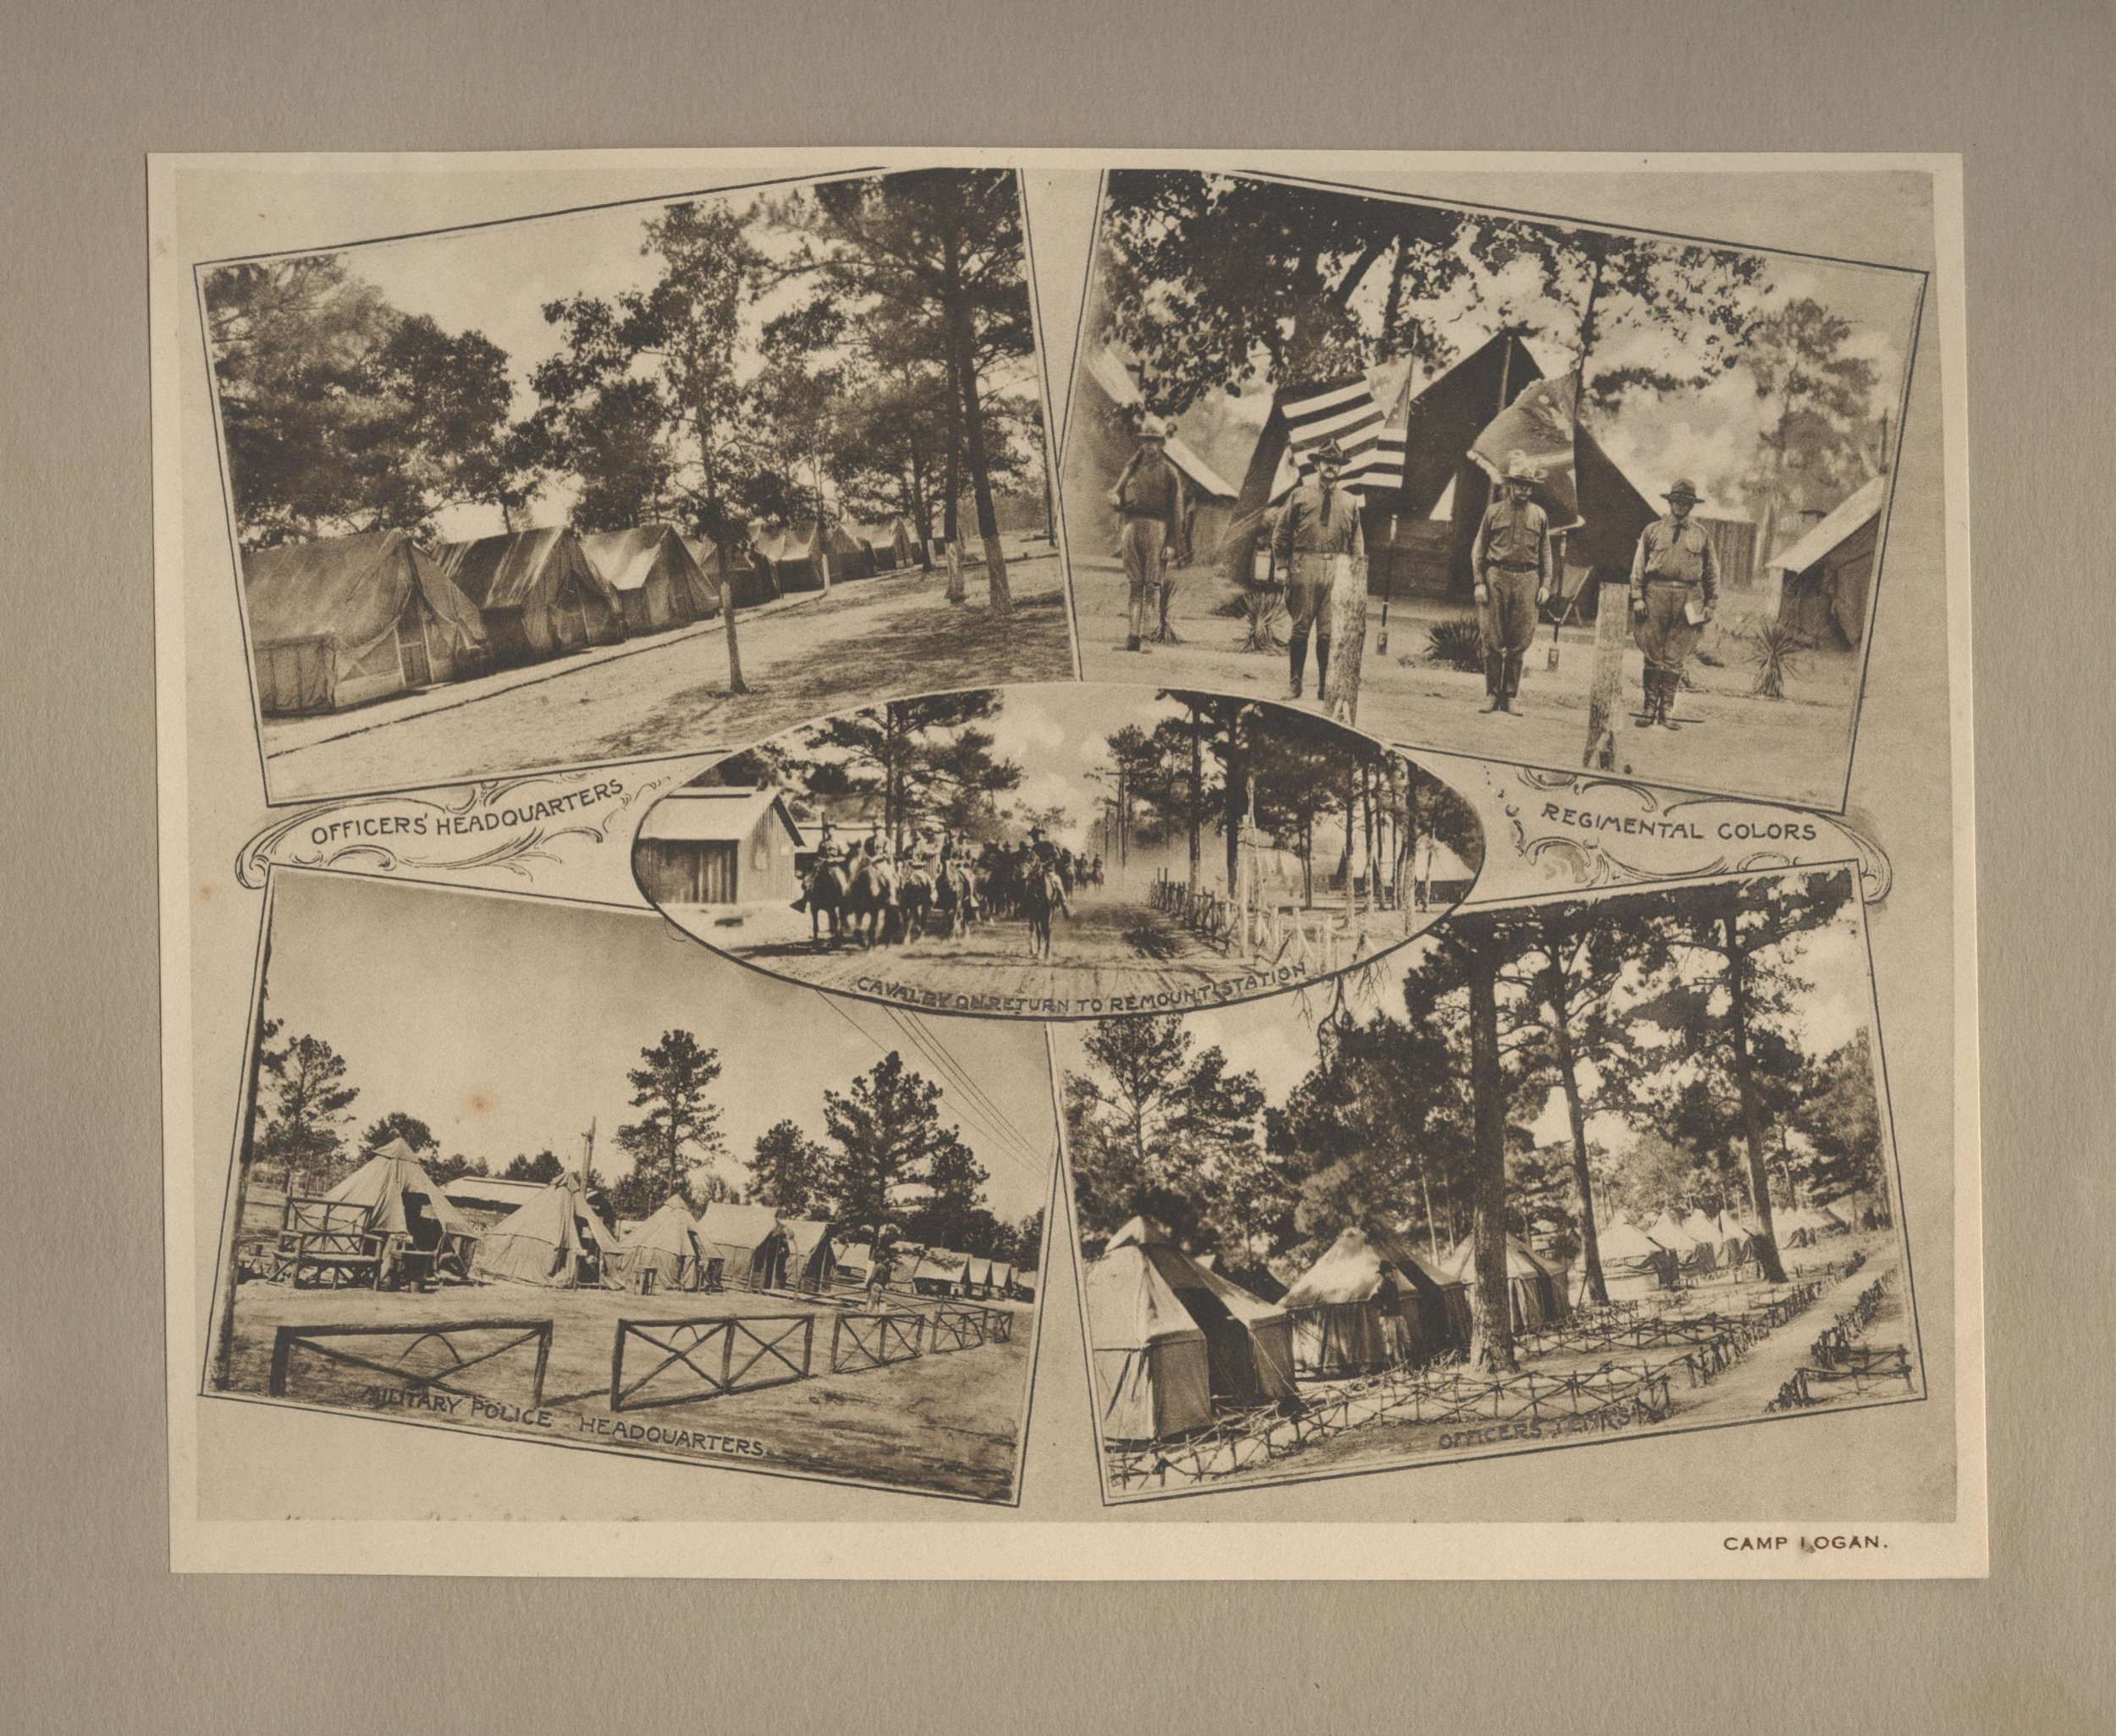 These images of the camp are from Houston and Picturesque Camp Logan, published by Schaeffer Photo Supply Co., Houston, Texas. The Albertype Co. Brooklyn N. Y. circa 1918. The Heritage Society Permanent Collection. Gift of Pat Alexander. Post card image of the Street Scene gift of Donna Fowler.